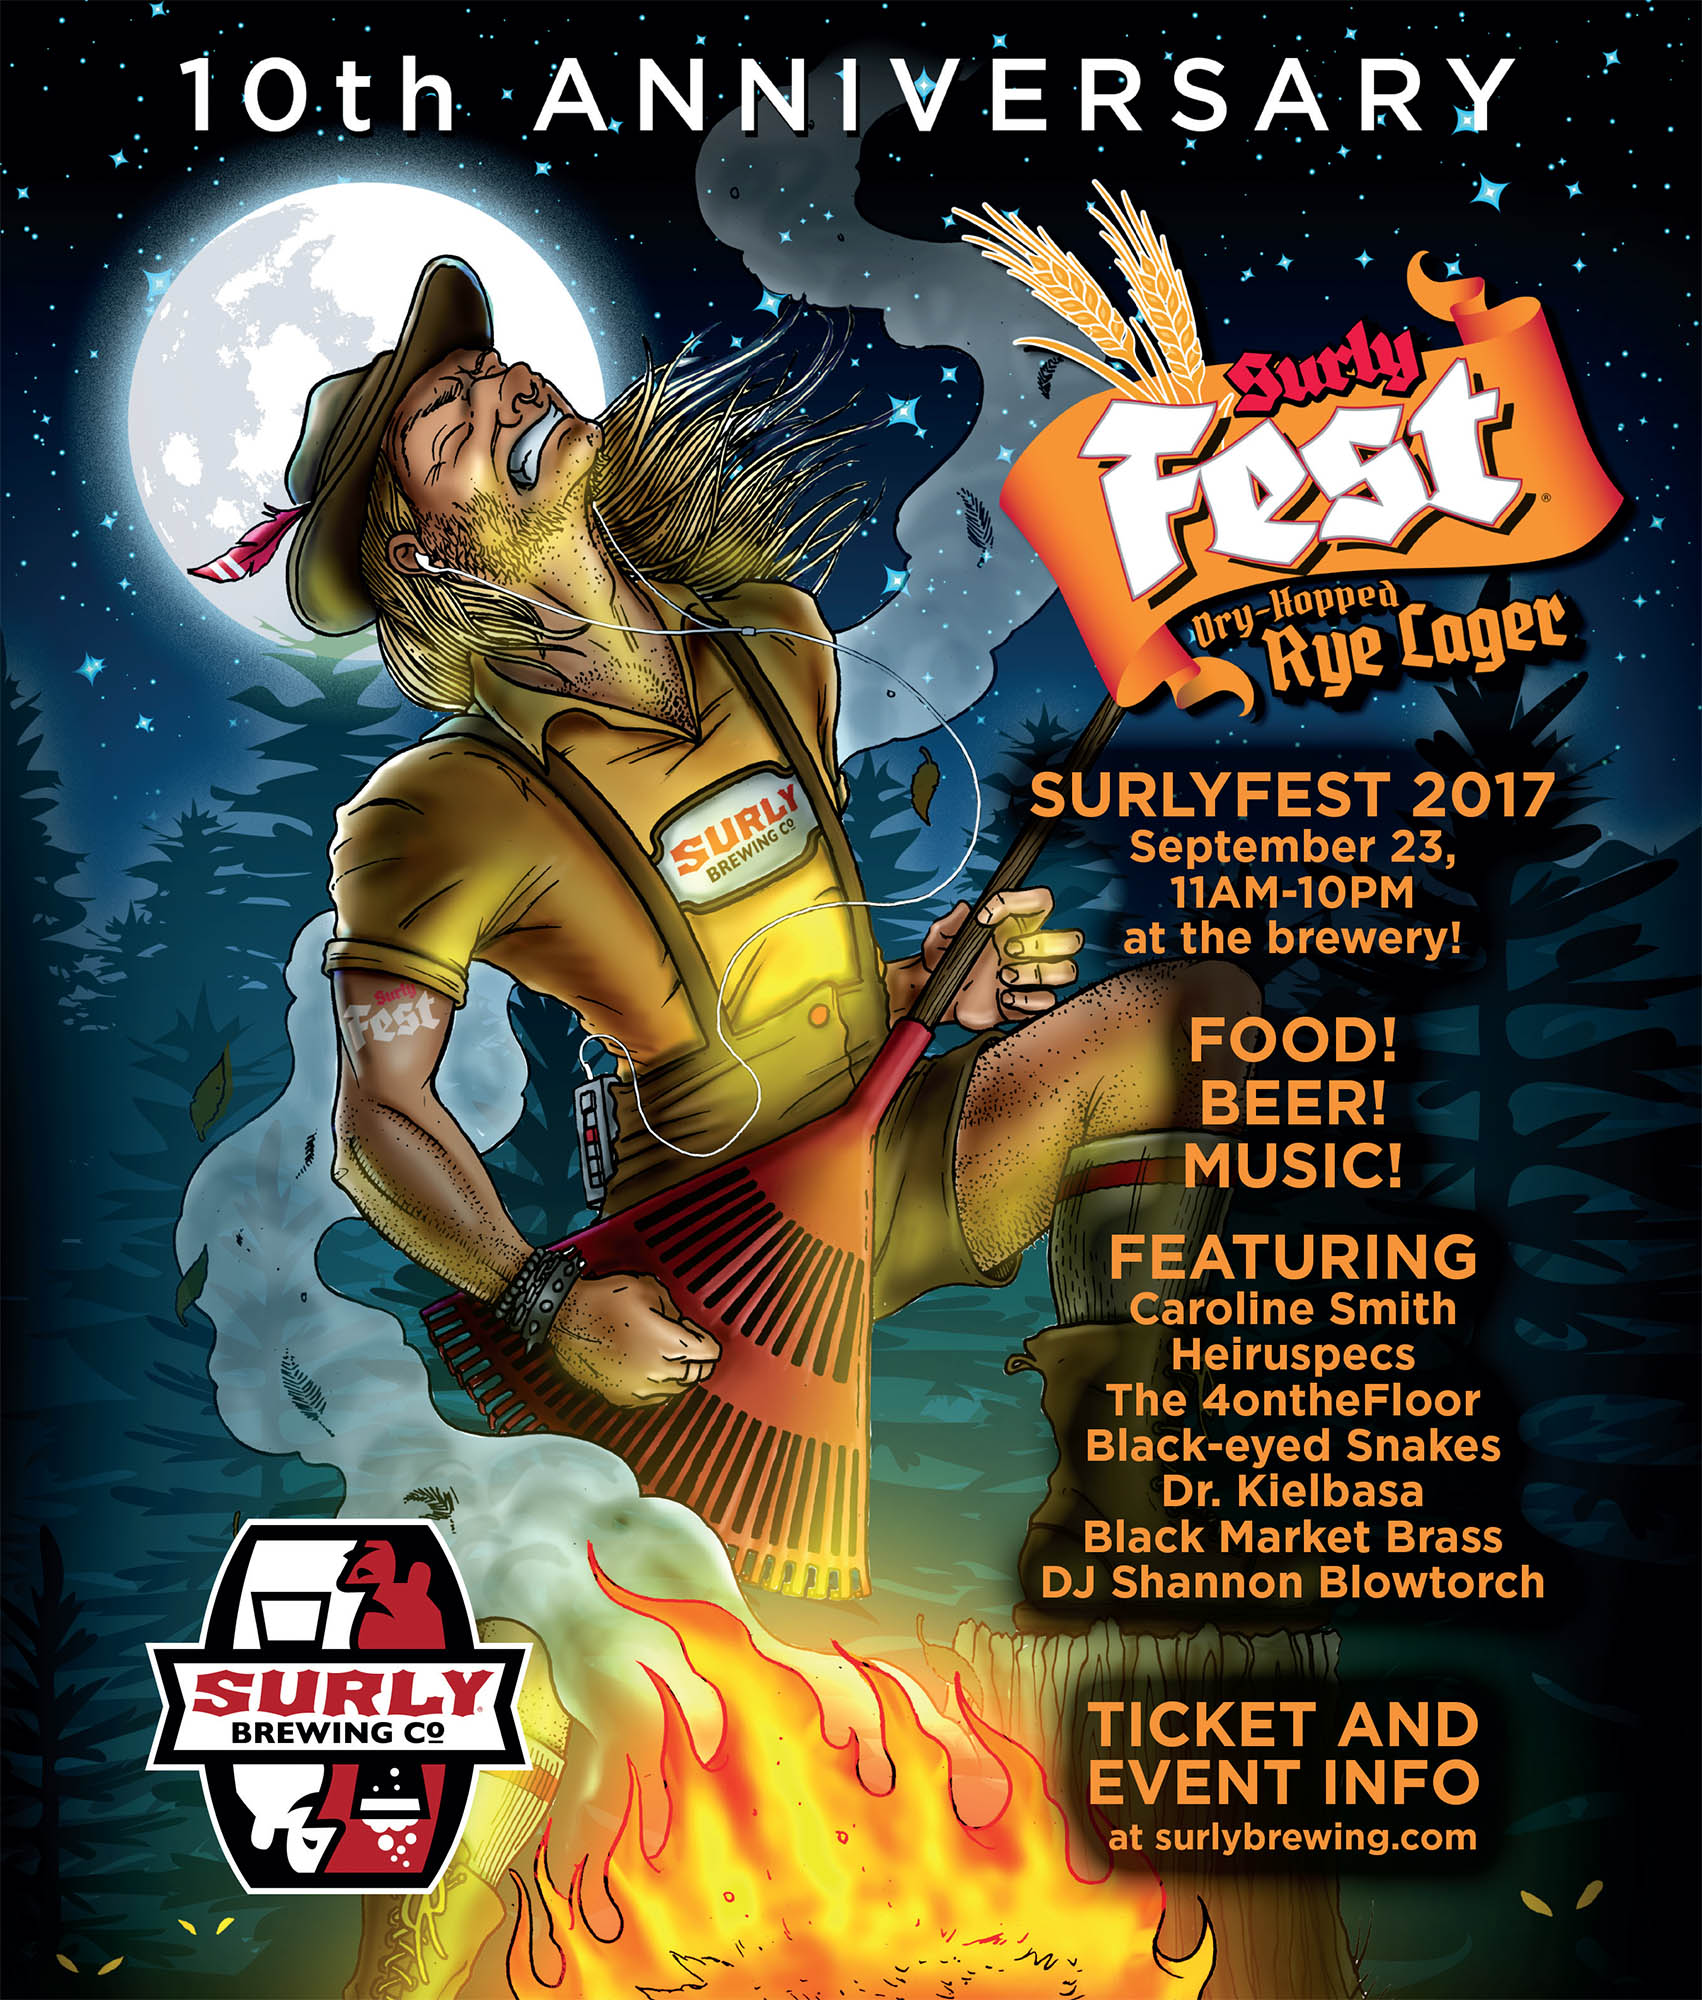 surlyfest citypages ad.indd